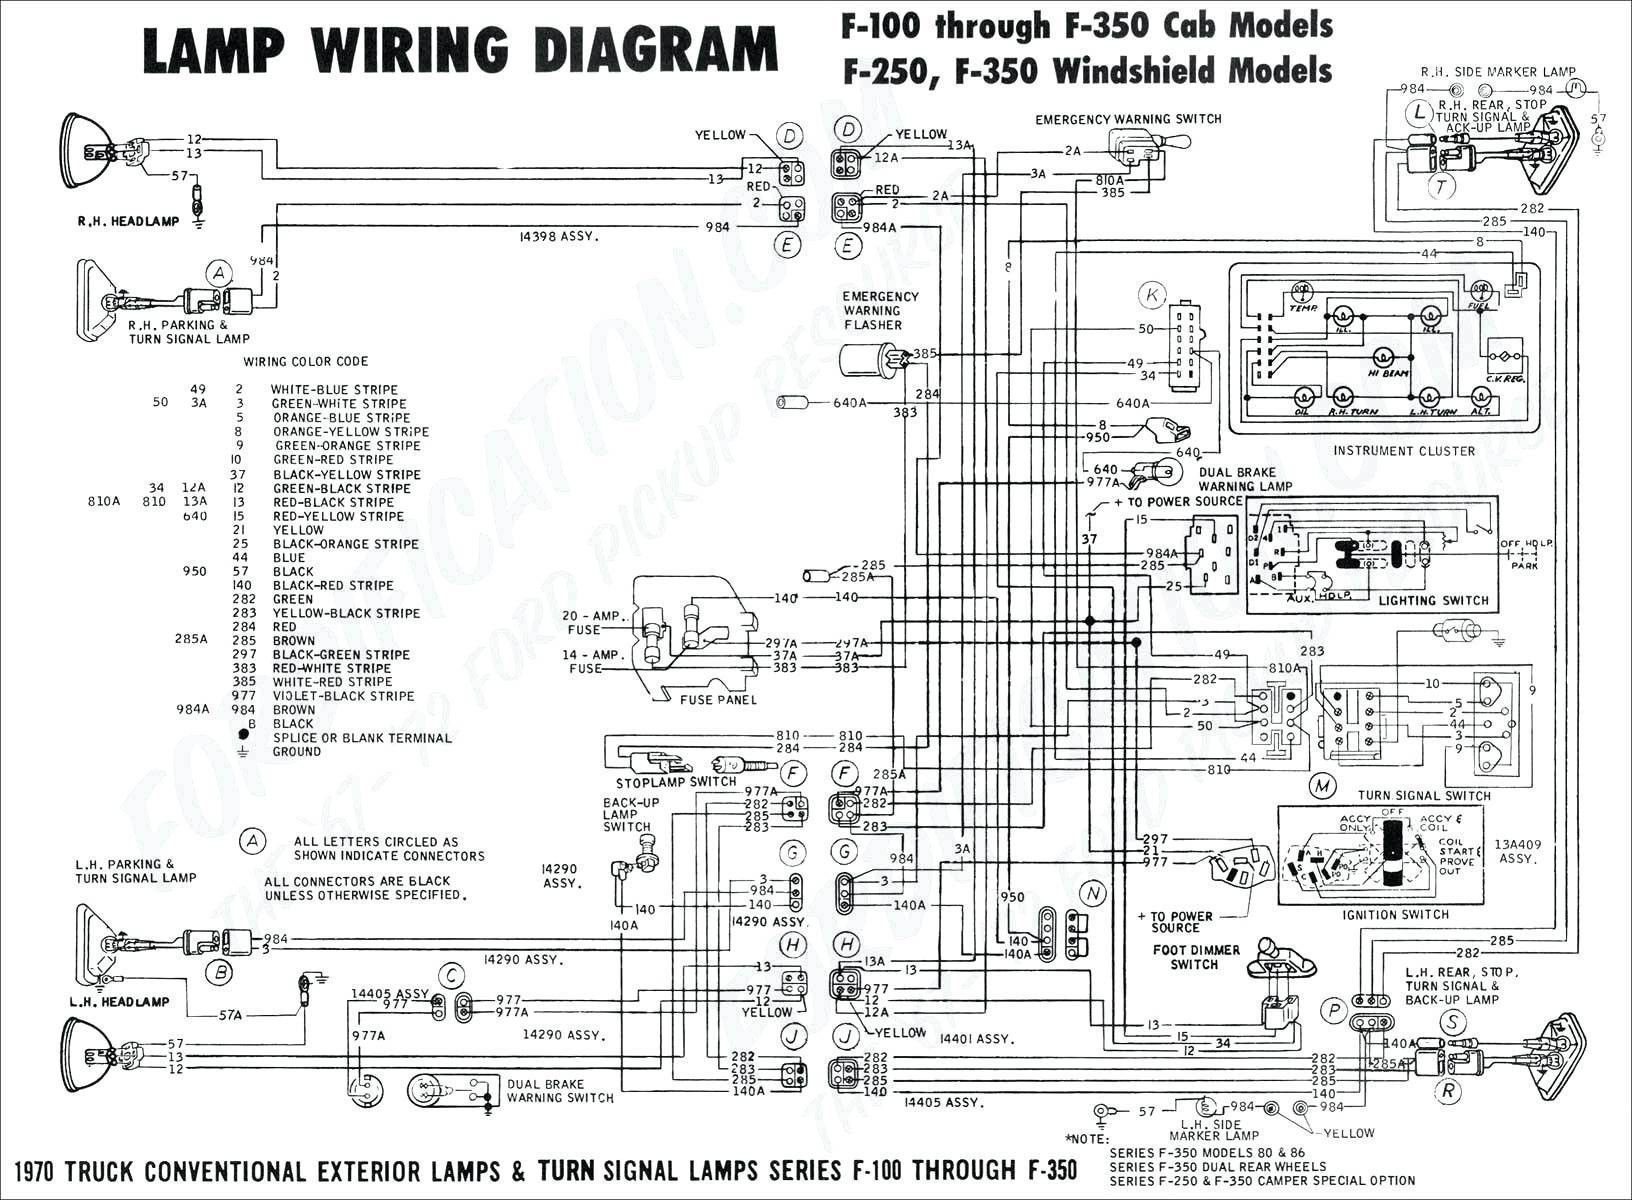 2003 Dodge Ram 1500 Tail Light Wiring Diagram Best 2006 Parking Valid 99 Of In Chevy Silverado Trailer Wiring Diagram Electrical Wiring Diagram Circuit Diagram